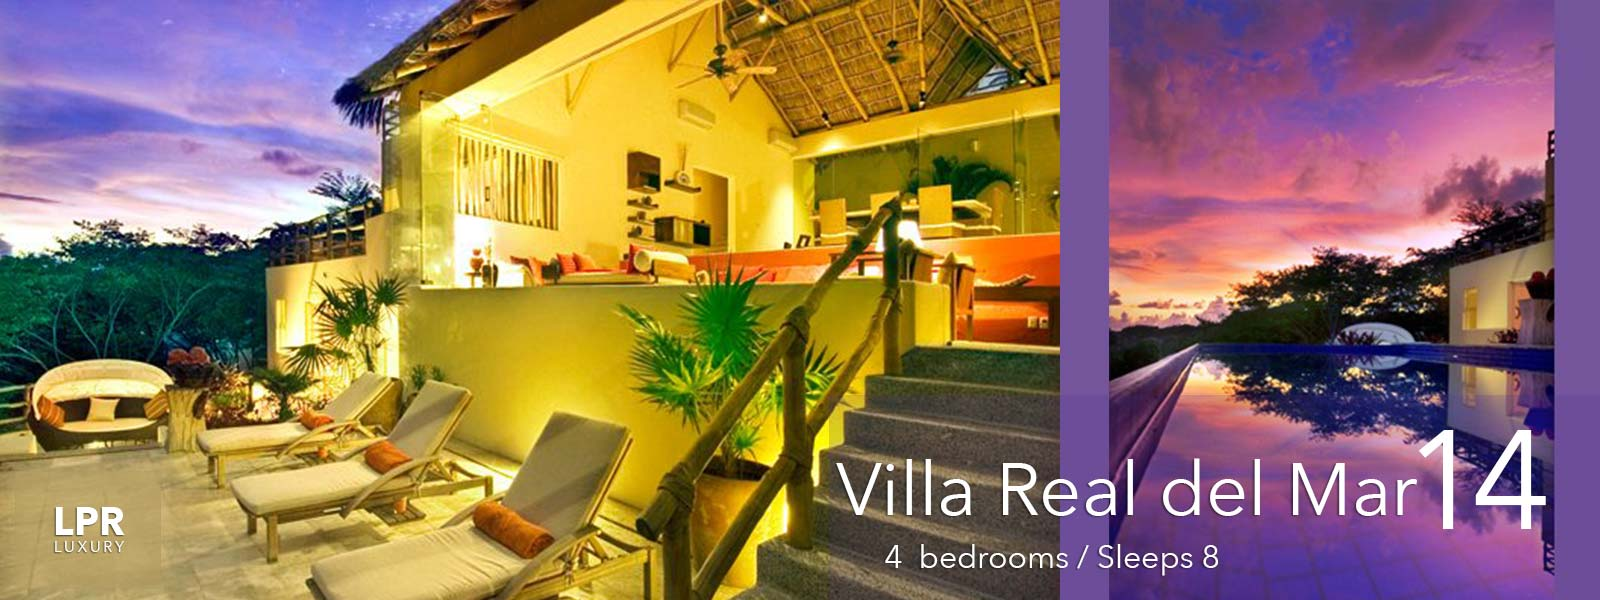 Villa Real del Mar 14 - Luxury vacation rental villa for rent and sale in Punta de Mita.